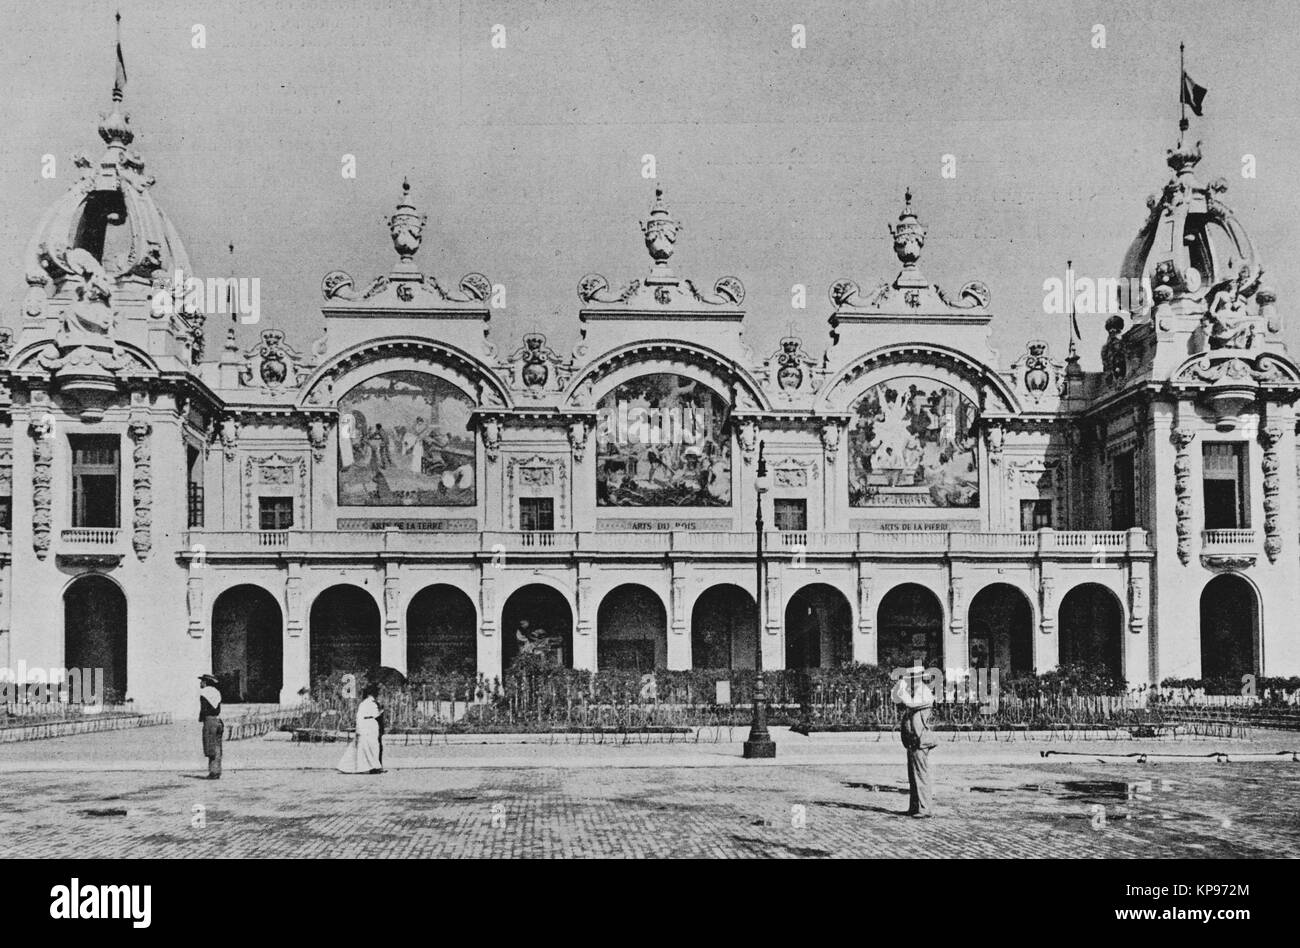 Palais des manufactures nationales, Universal Exhibition 1900 in Paris, Picture from the French weekly newspaper - Stock Image